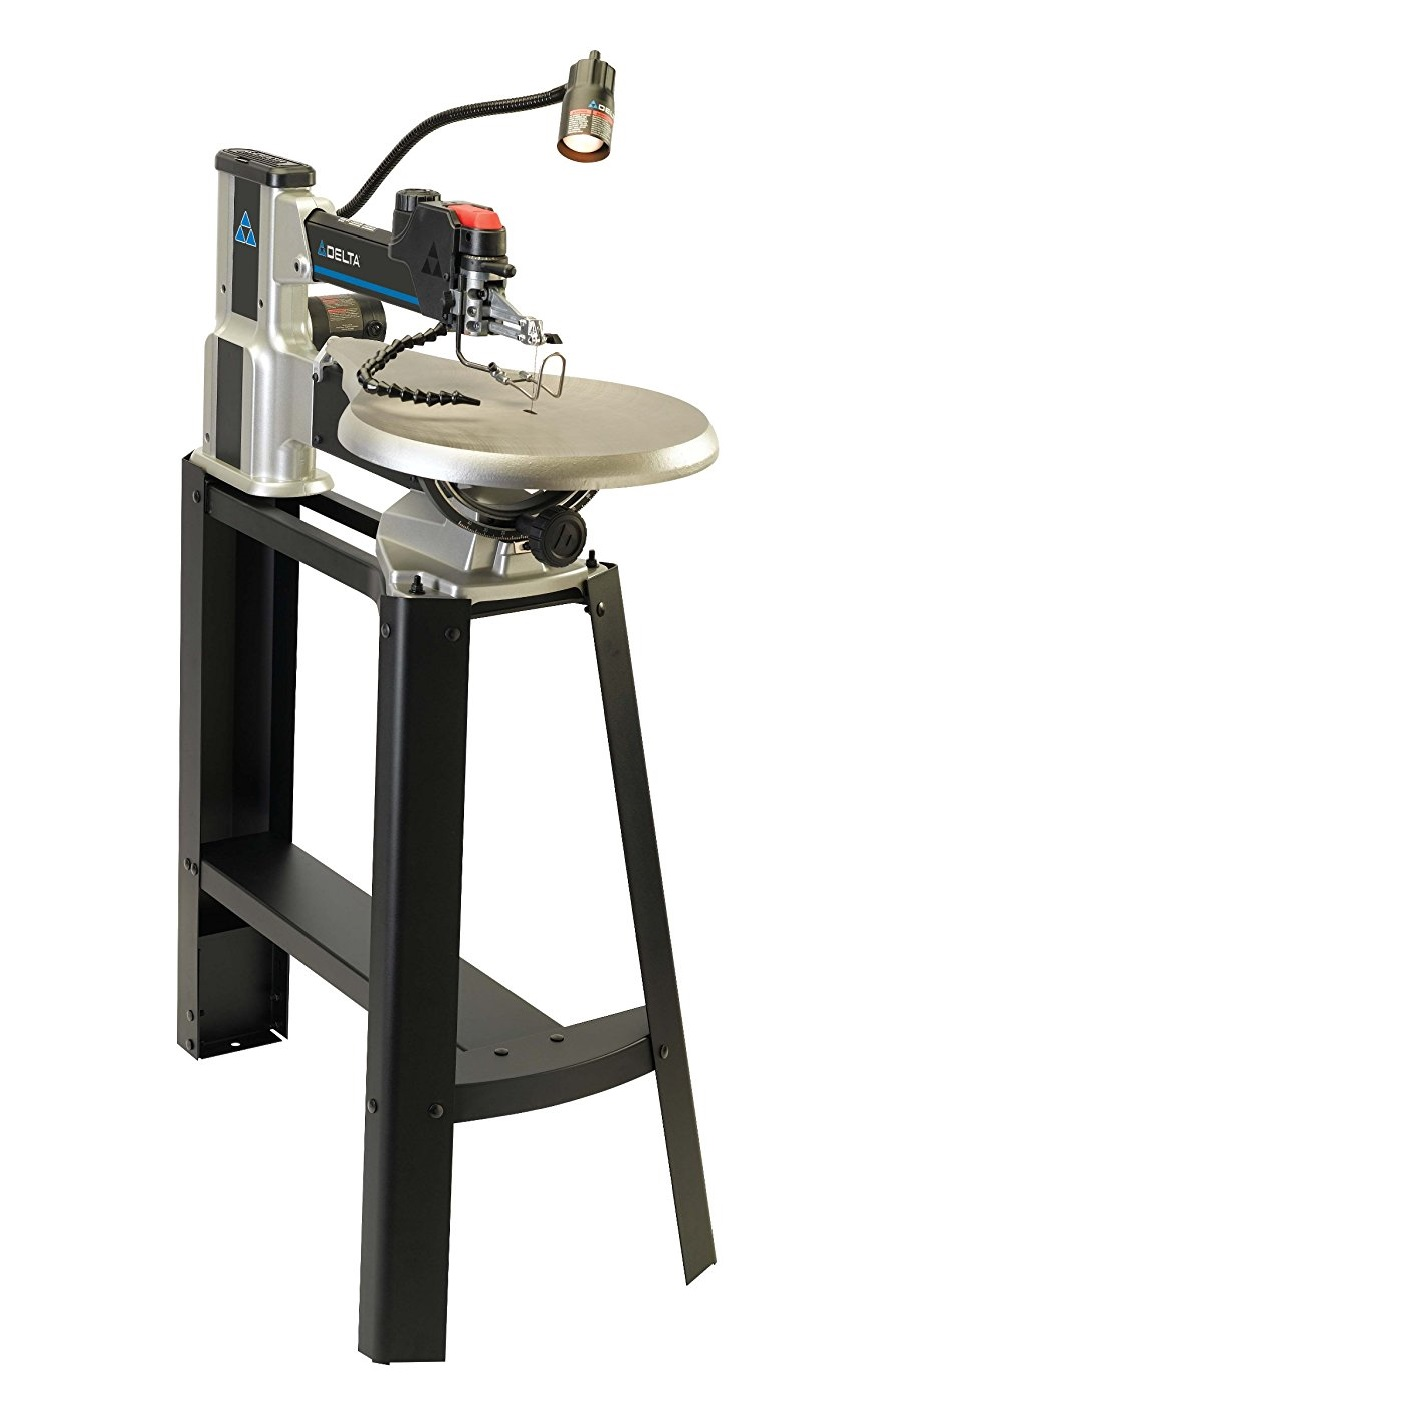 Delta 20-Inch Variable Speed Power Scroll Saw